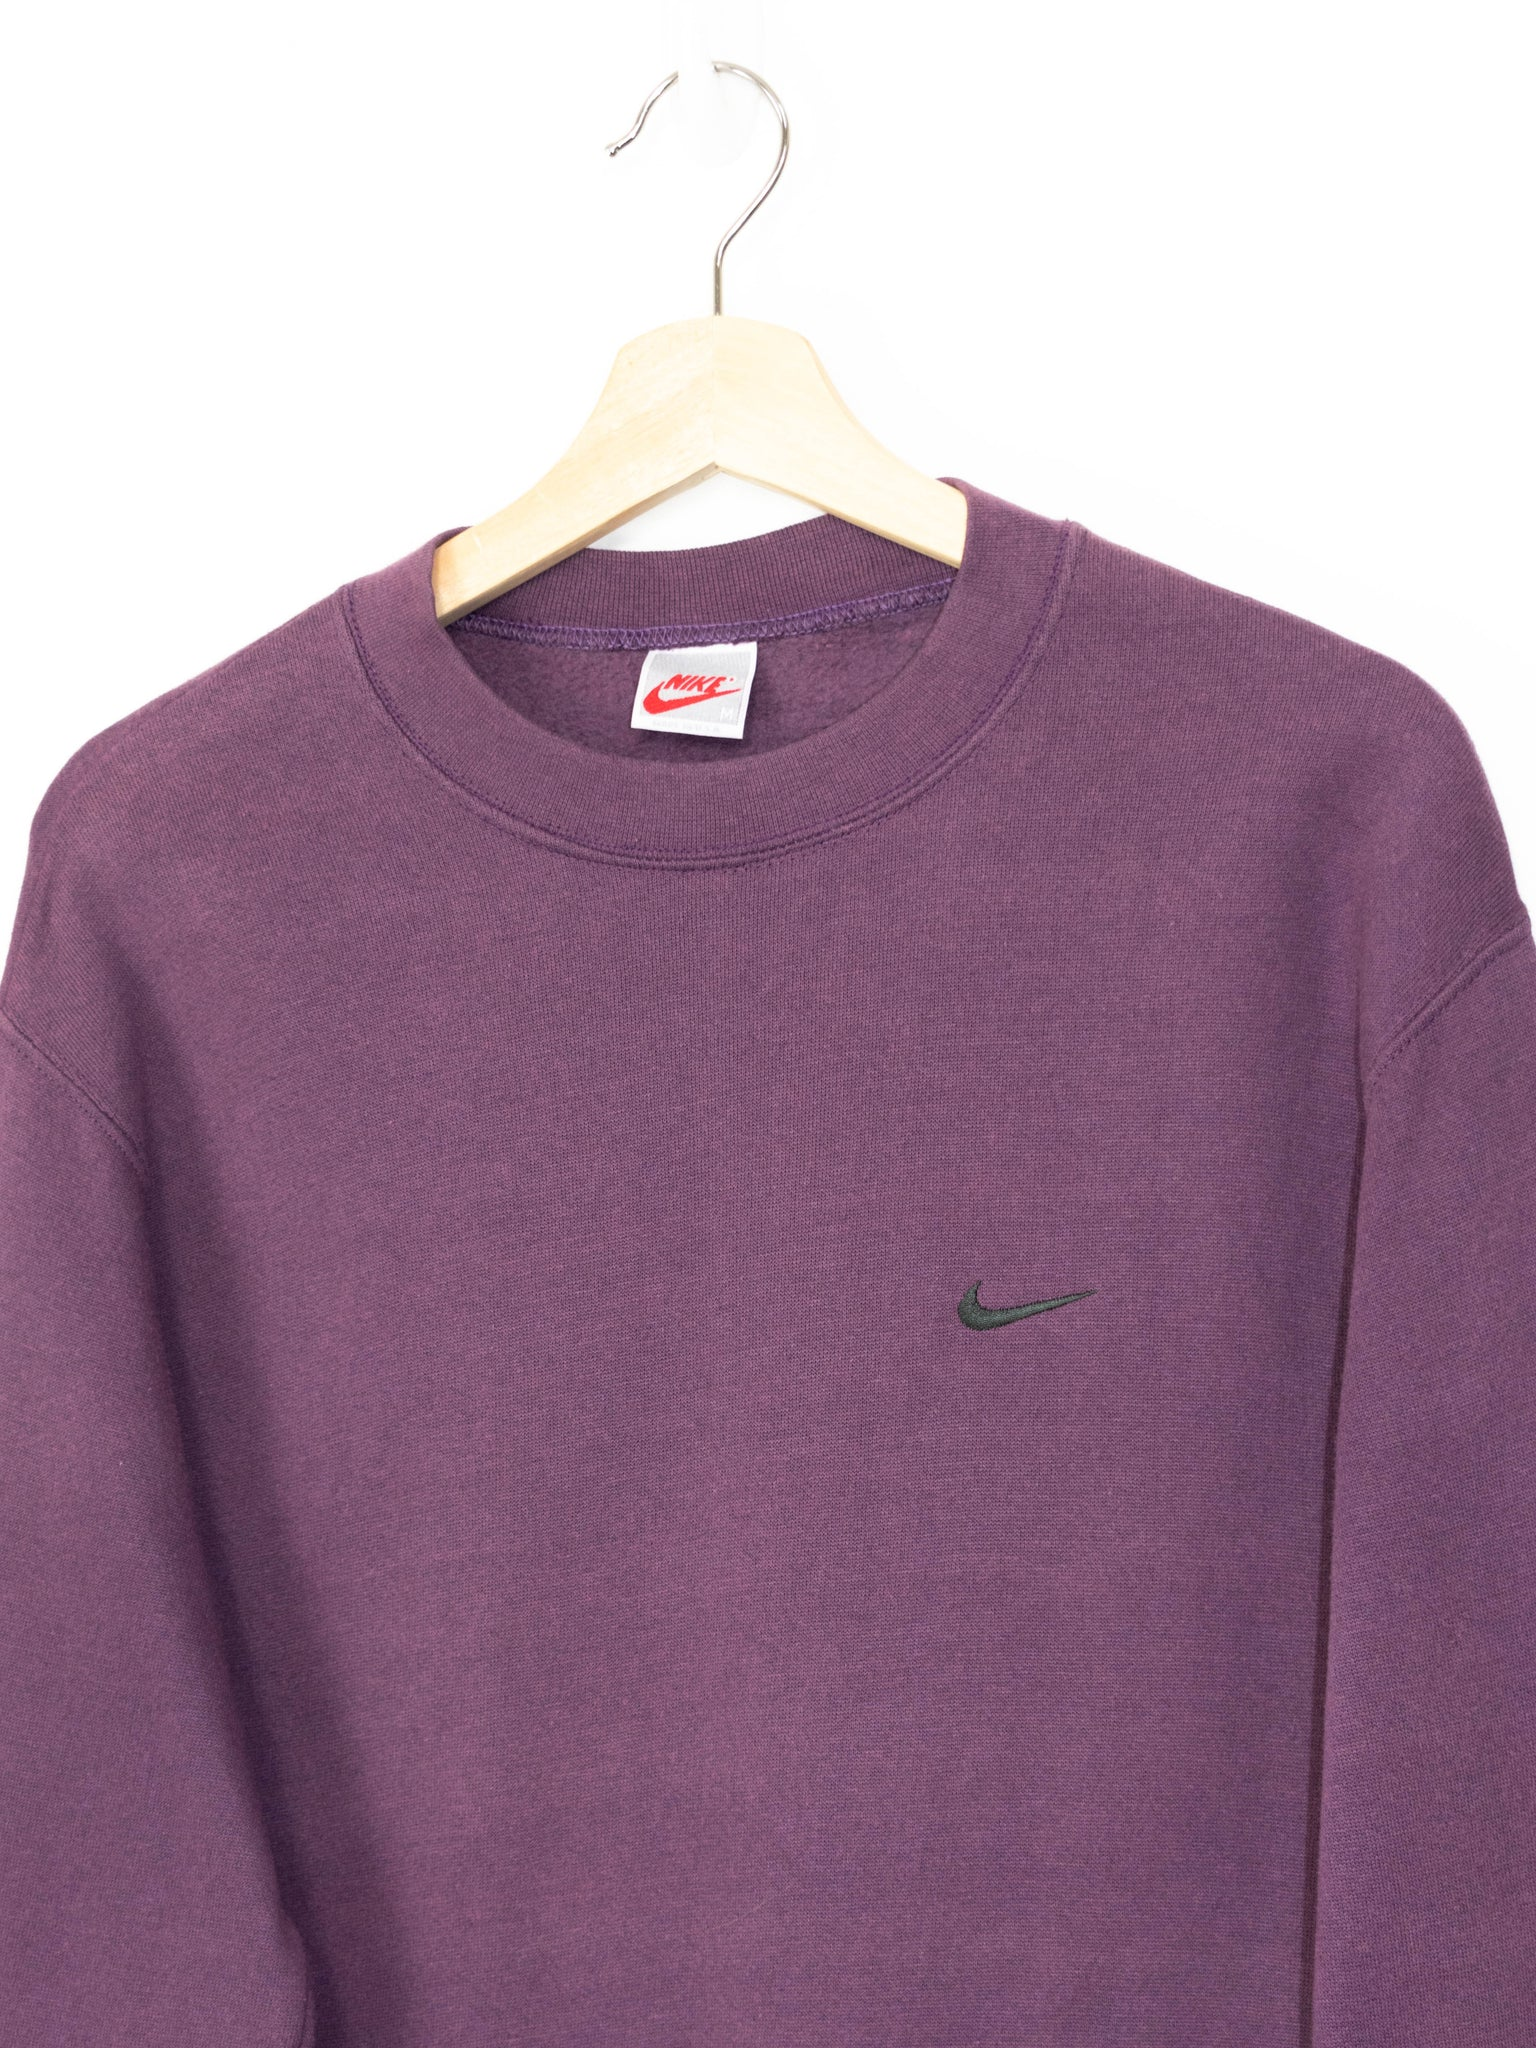 Vintage Nike sweater size: S